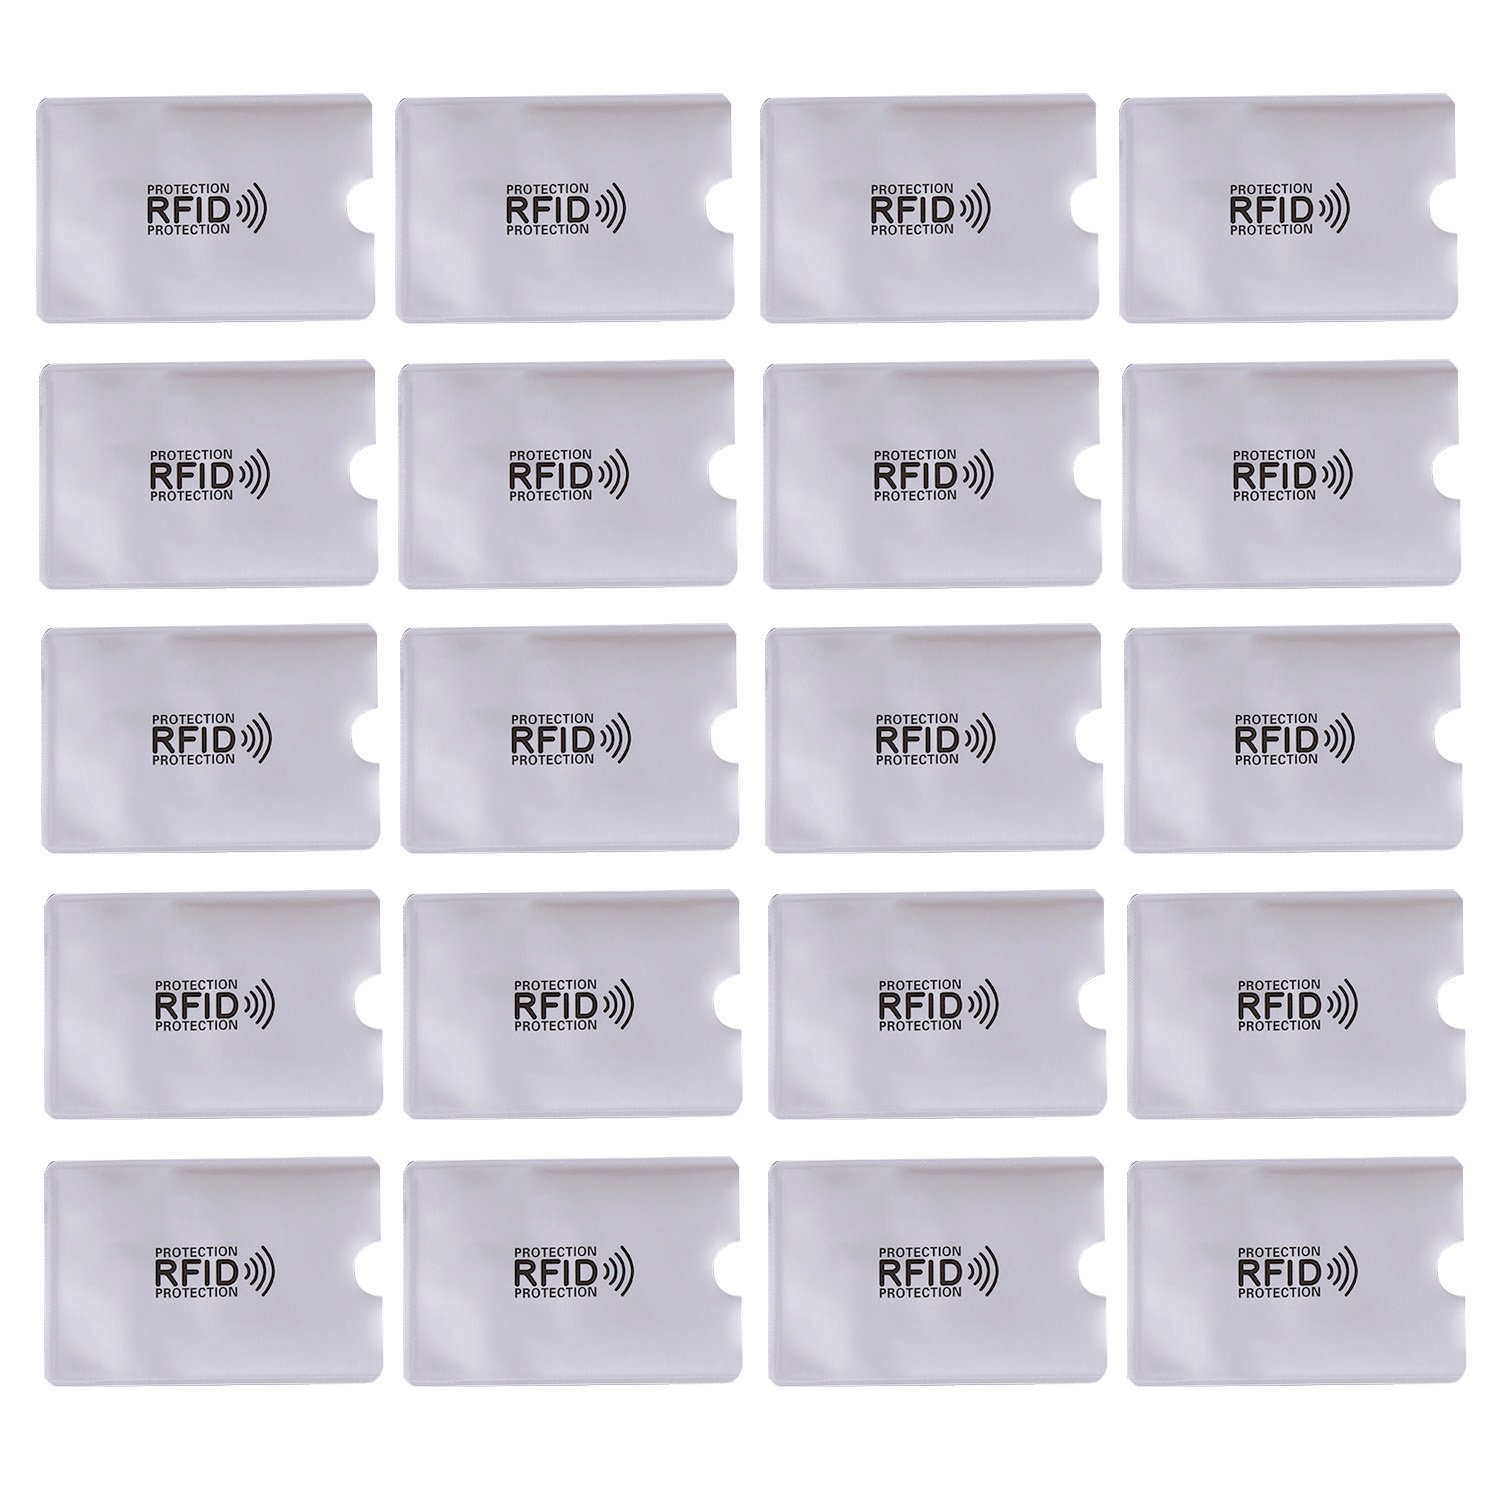 20PCS Aluminum Anti Theft RFID Blocking Sleeves Card Holder Protector for Credit ID Debit Card Elisona S